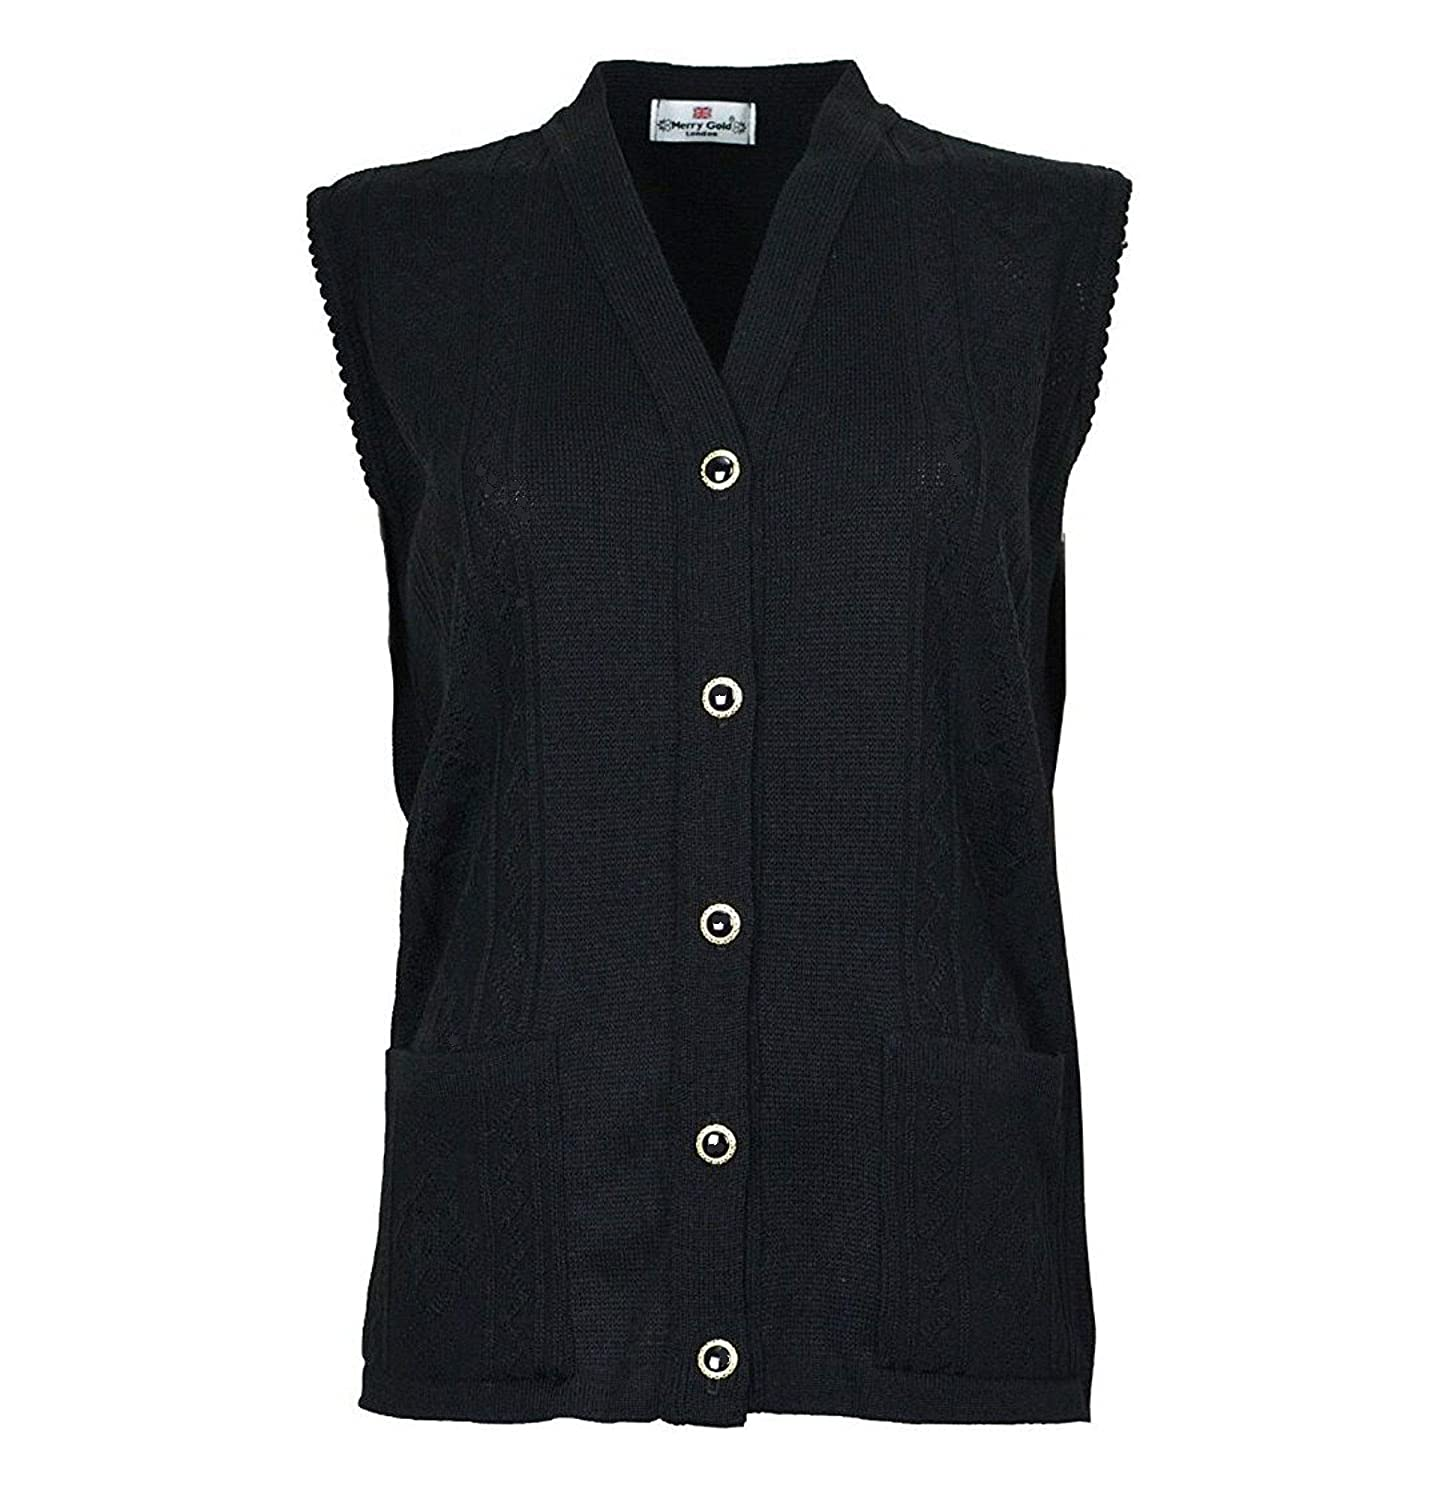 Merry Gold Sleeveless Cardigan Womens Knitted Waistcoat with Pockets Care Home Proof